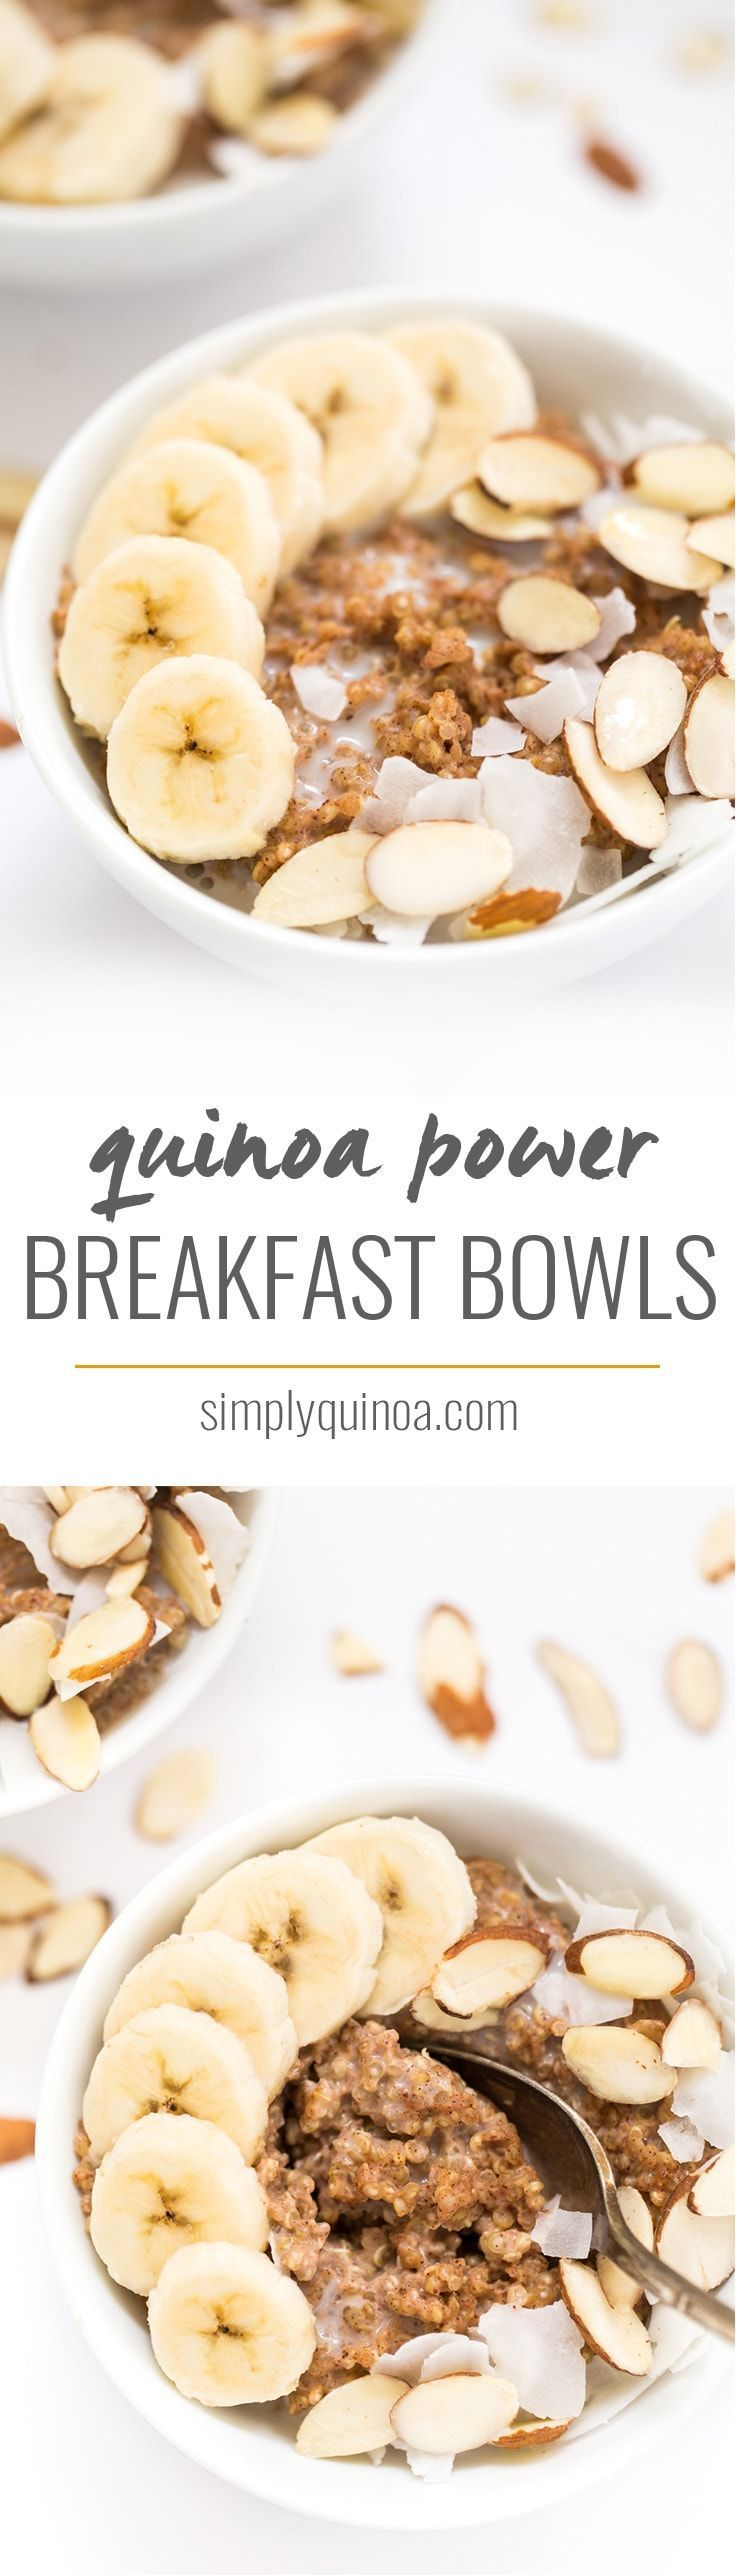 Kick start your day with these delicious QUINOA POWER BREAKFAST BOWLS! They're a cinch to make, are packed with protein and will keep you energized all day long!